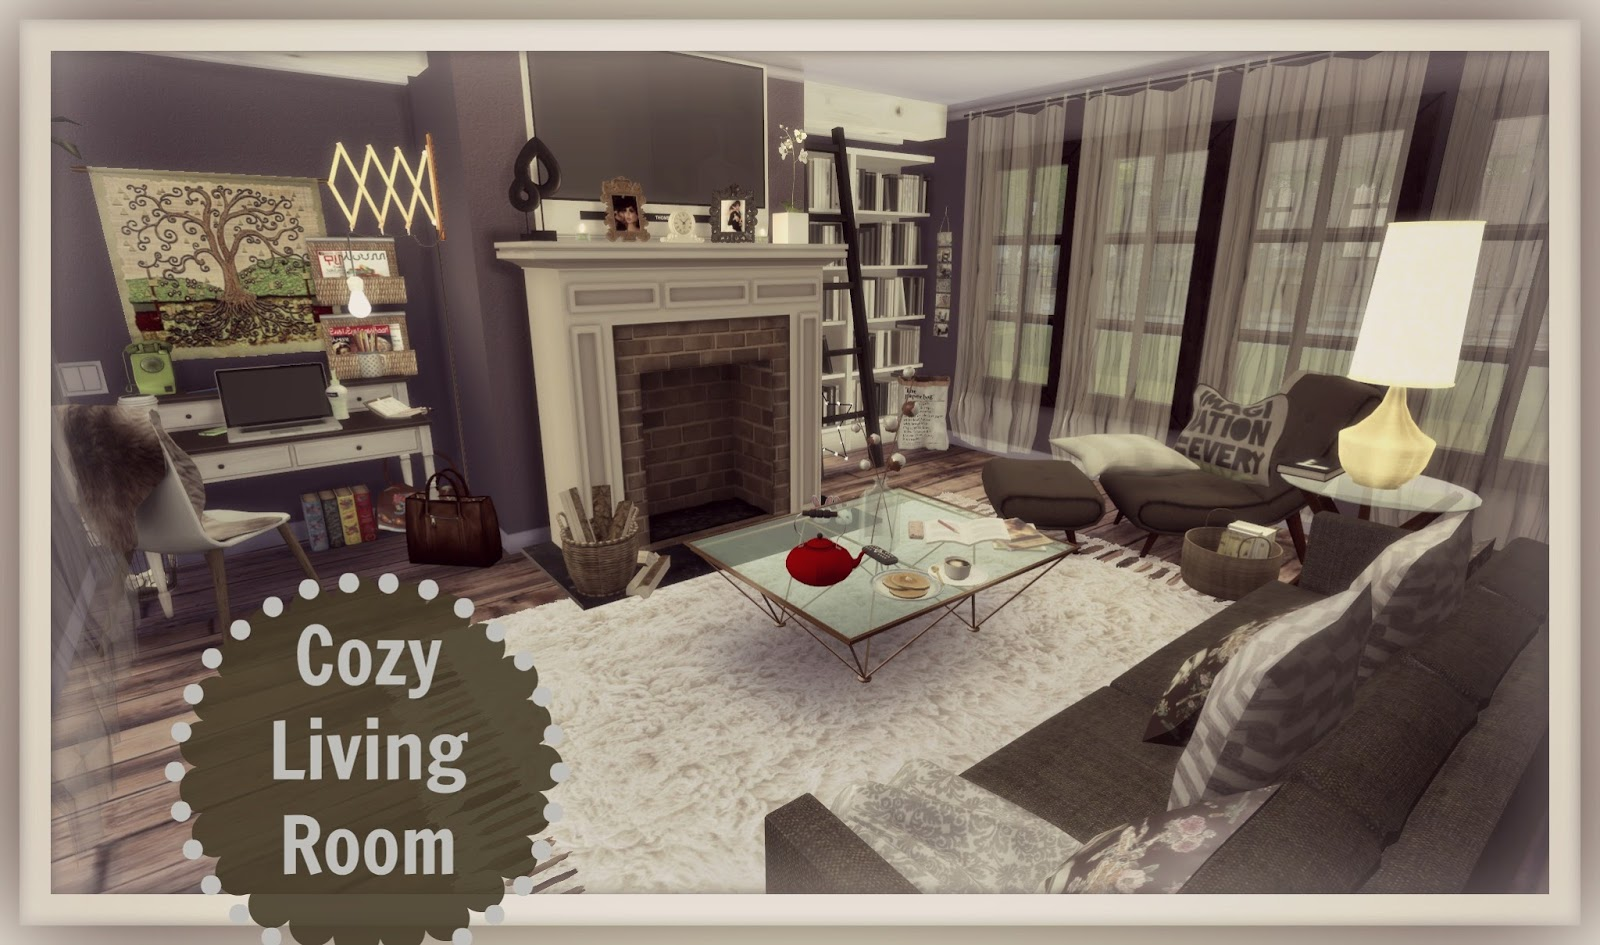 Sims 4 Cozy Living Room Dinha